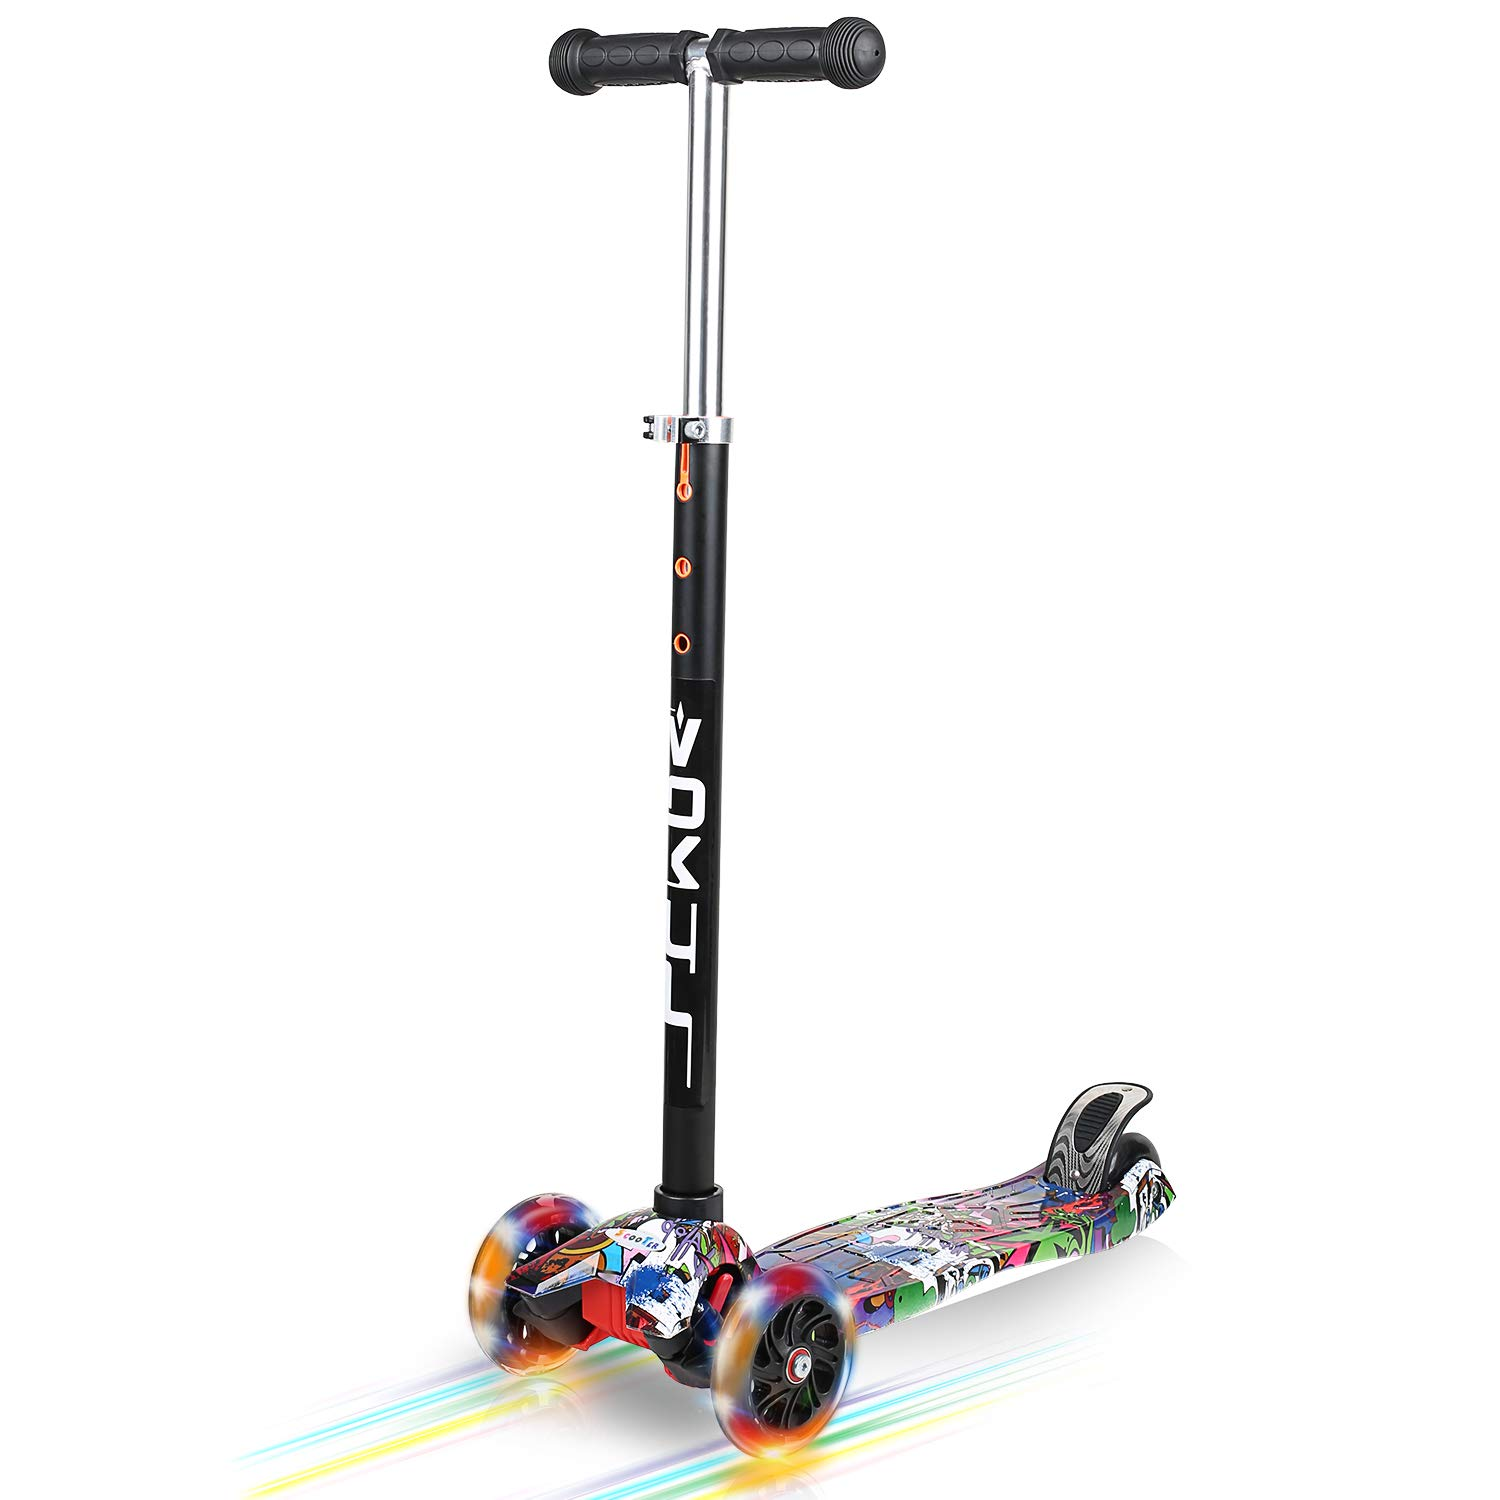 VOKUL 3 Wheel Mini Kick Scooter with LED Flashing Wheels for Age 3+ by VOKUL